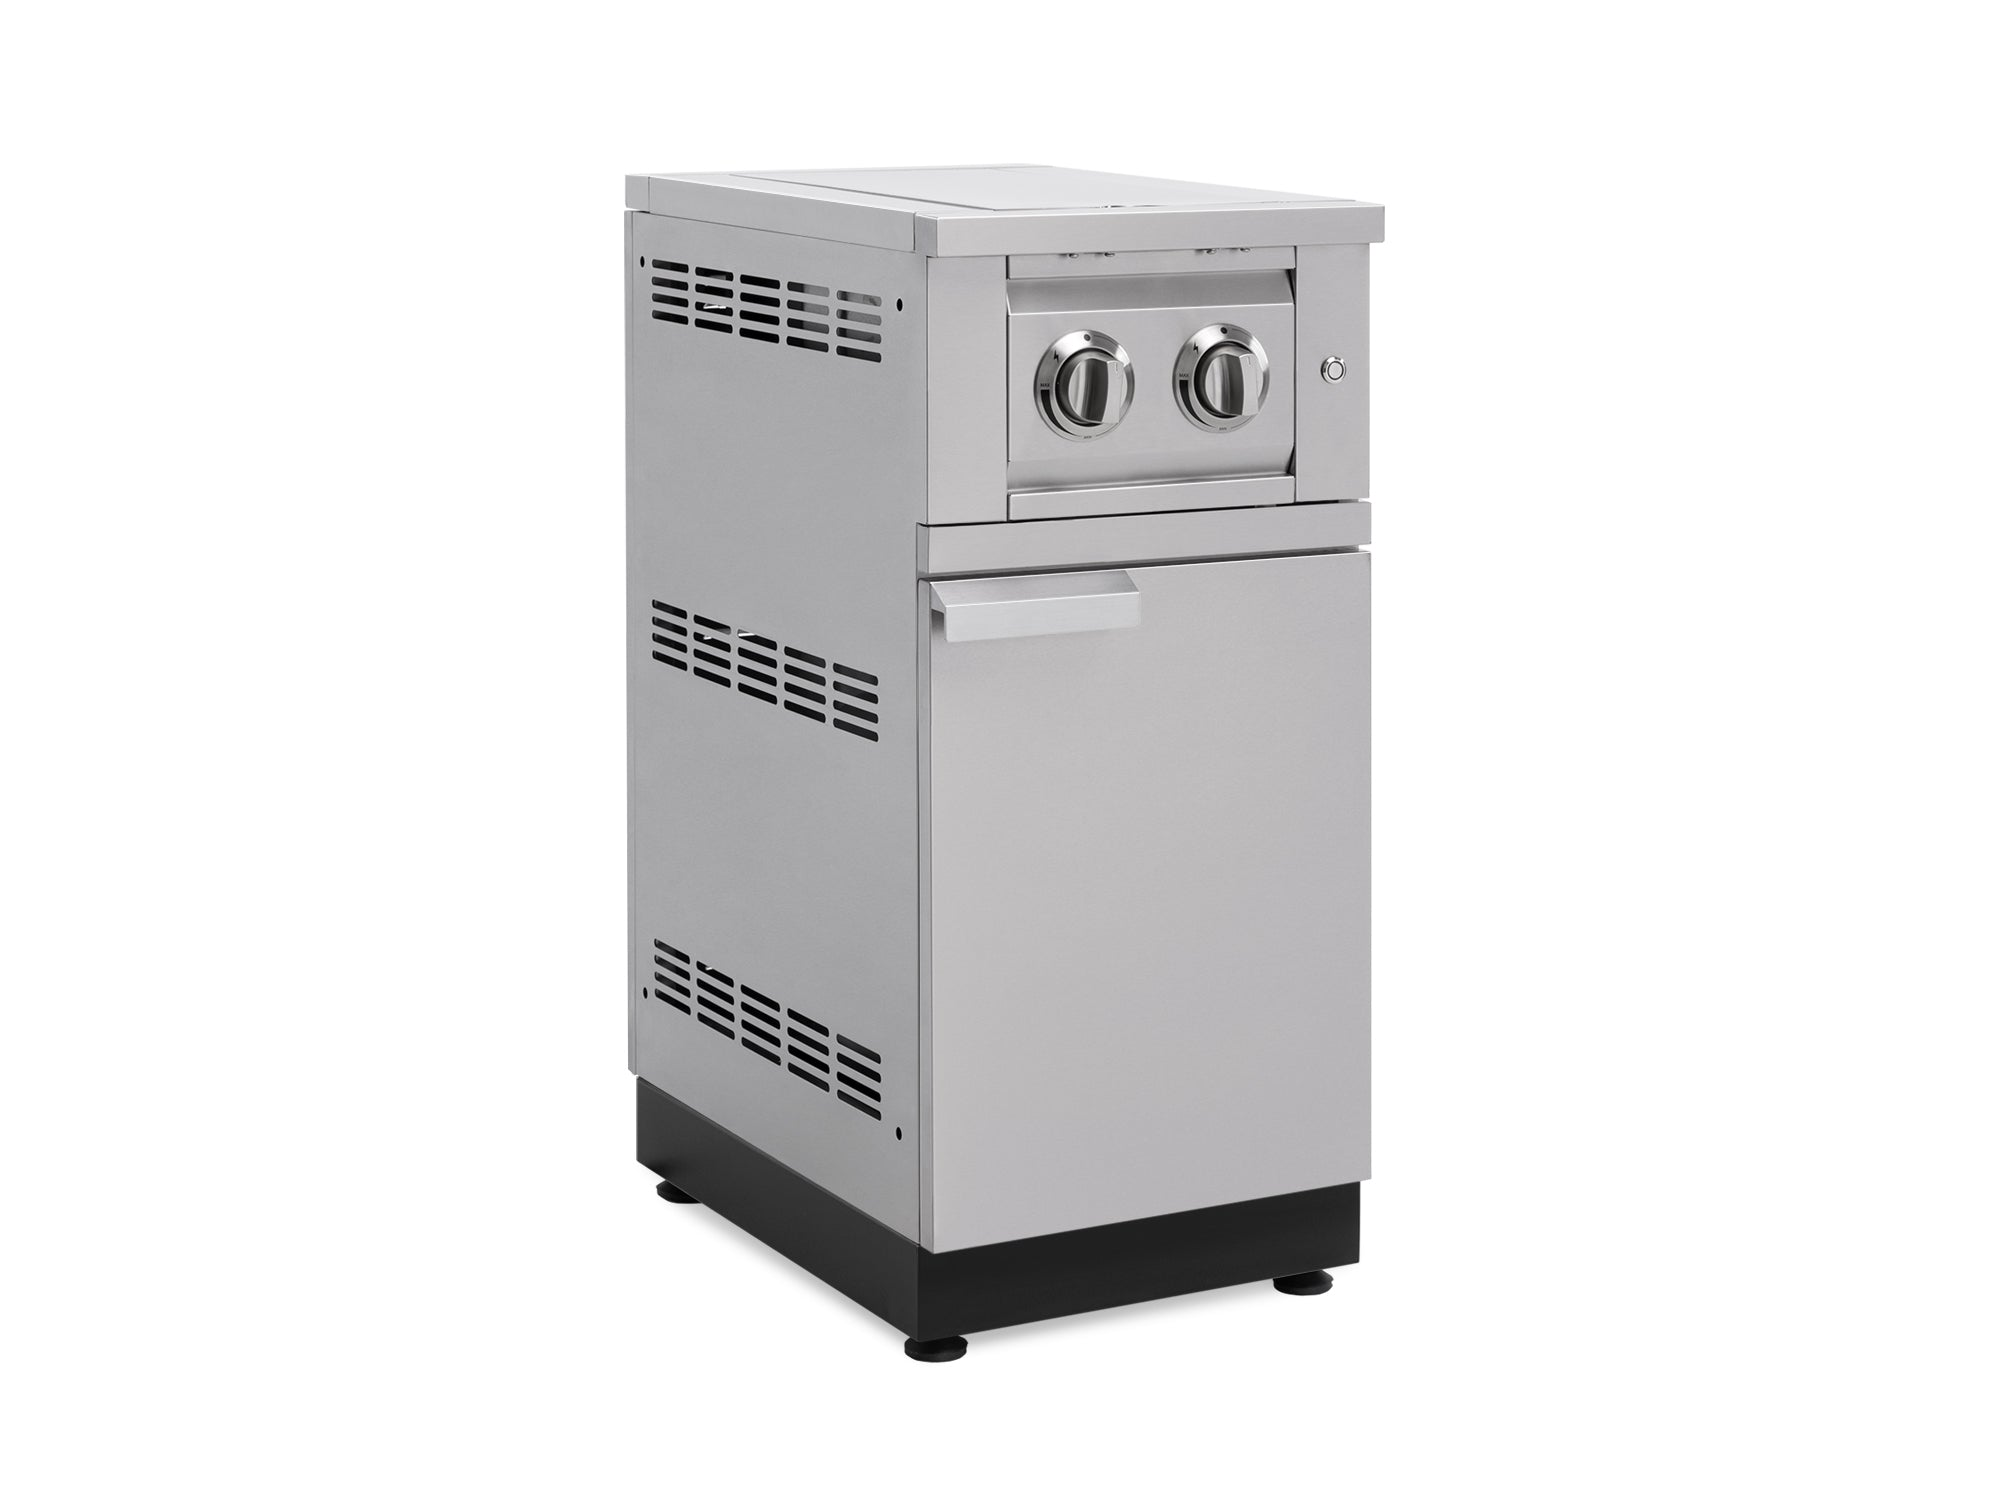 Outdoor Kitchen Dual Side Burner Cabinet in Stainless Steel with Cover